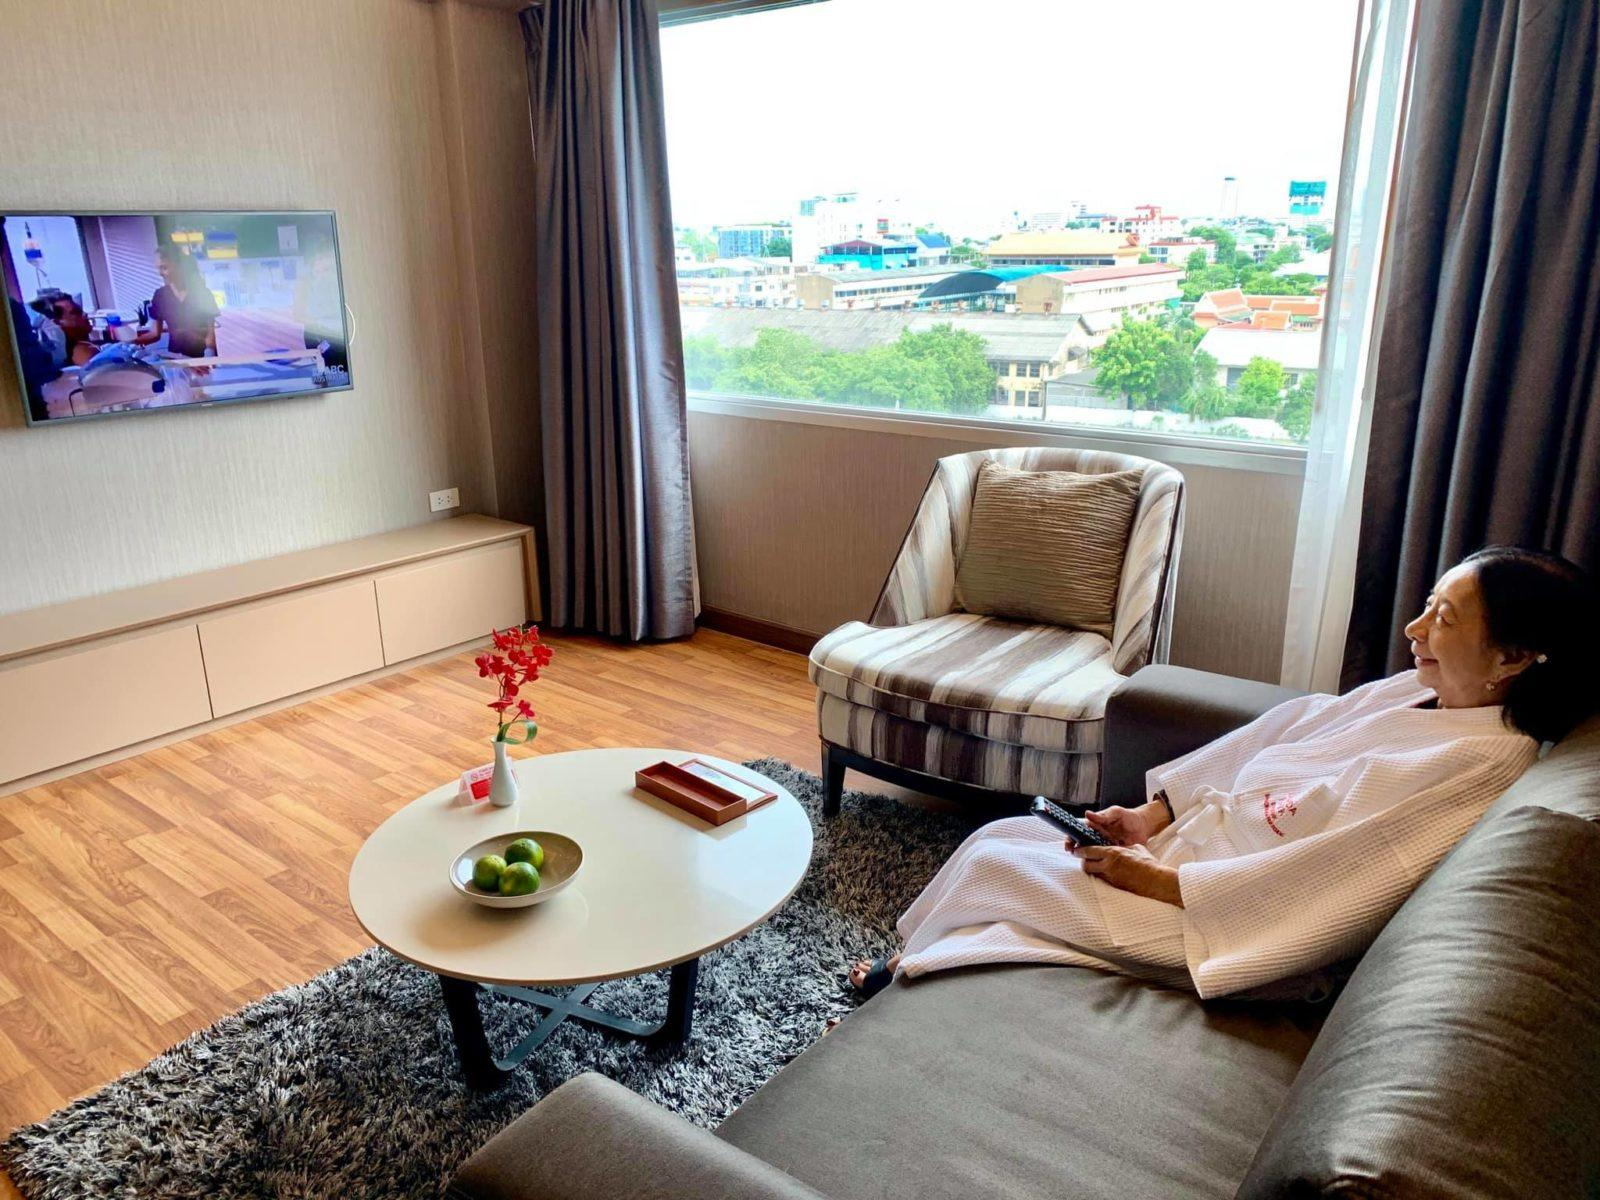 Our Luxurious Staycation At Ramada Plaza In Bangkok And Our Tour With Tinggly Experiences